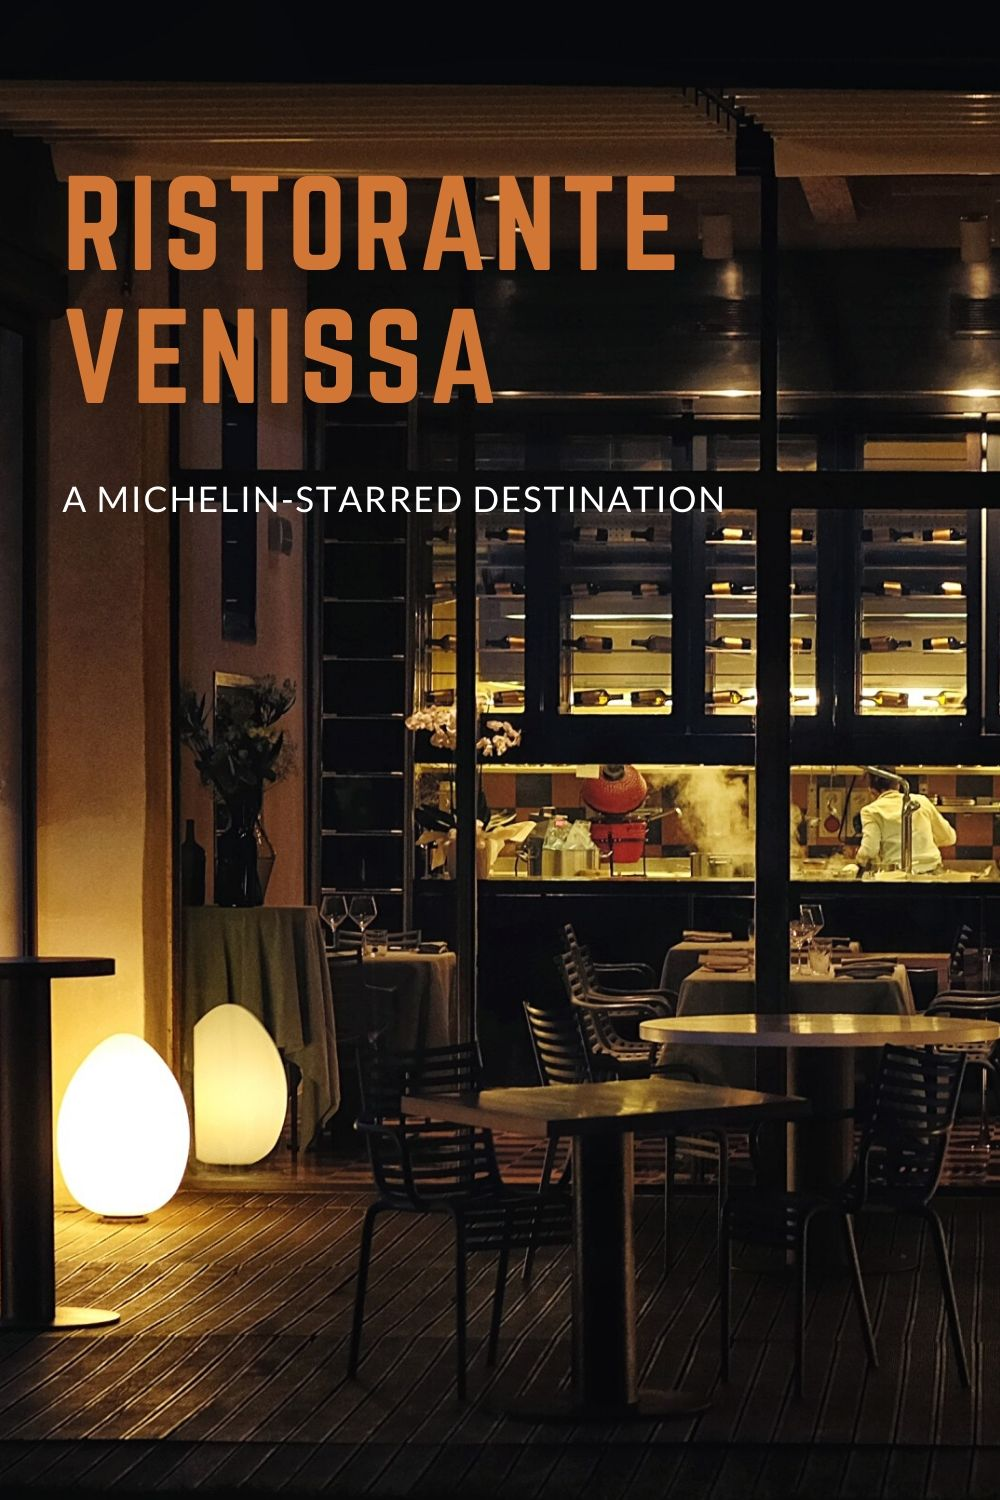 Ristorante Venissa - A Michelin-Starred Destination; food review by White Caviar Life.